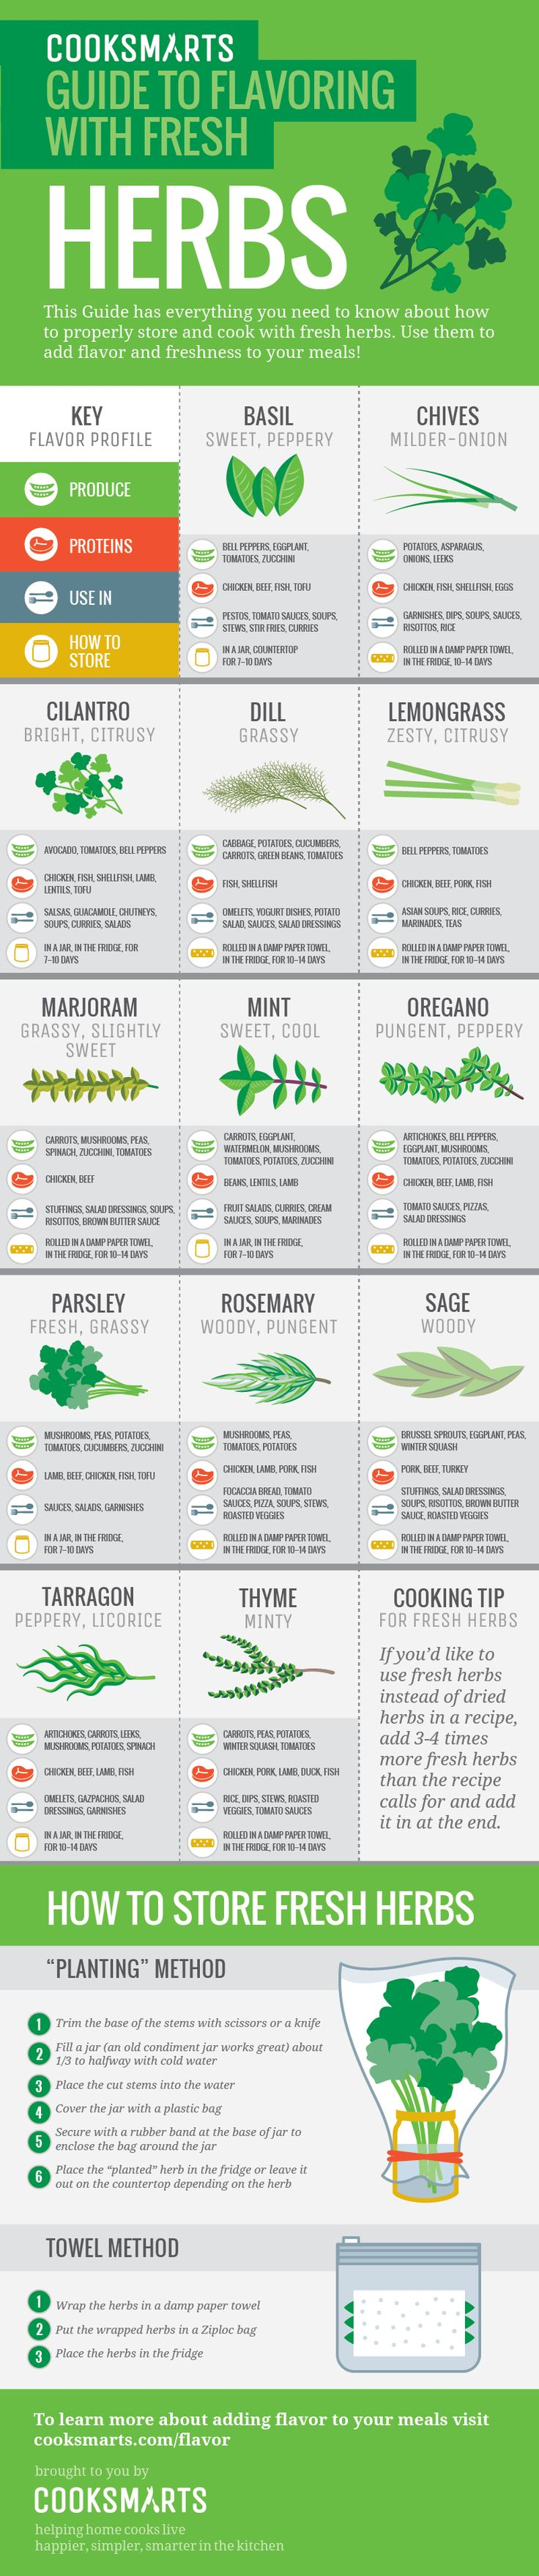 How to properly store and cook with fresh herbs via @CookSmarts #flavor #herbs -> LOVE this!